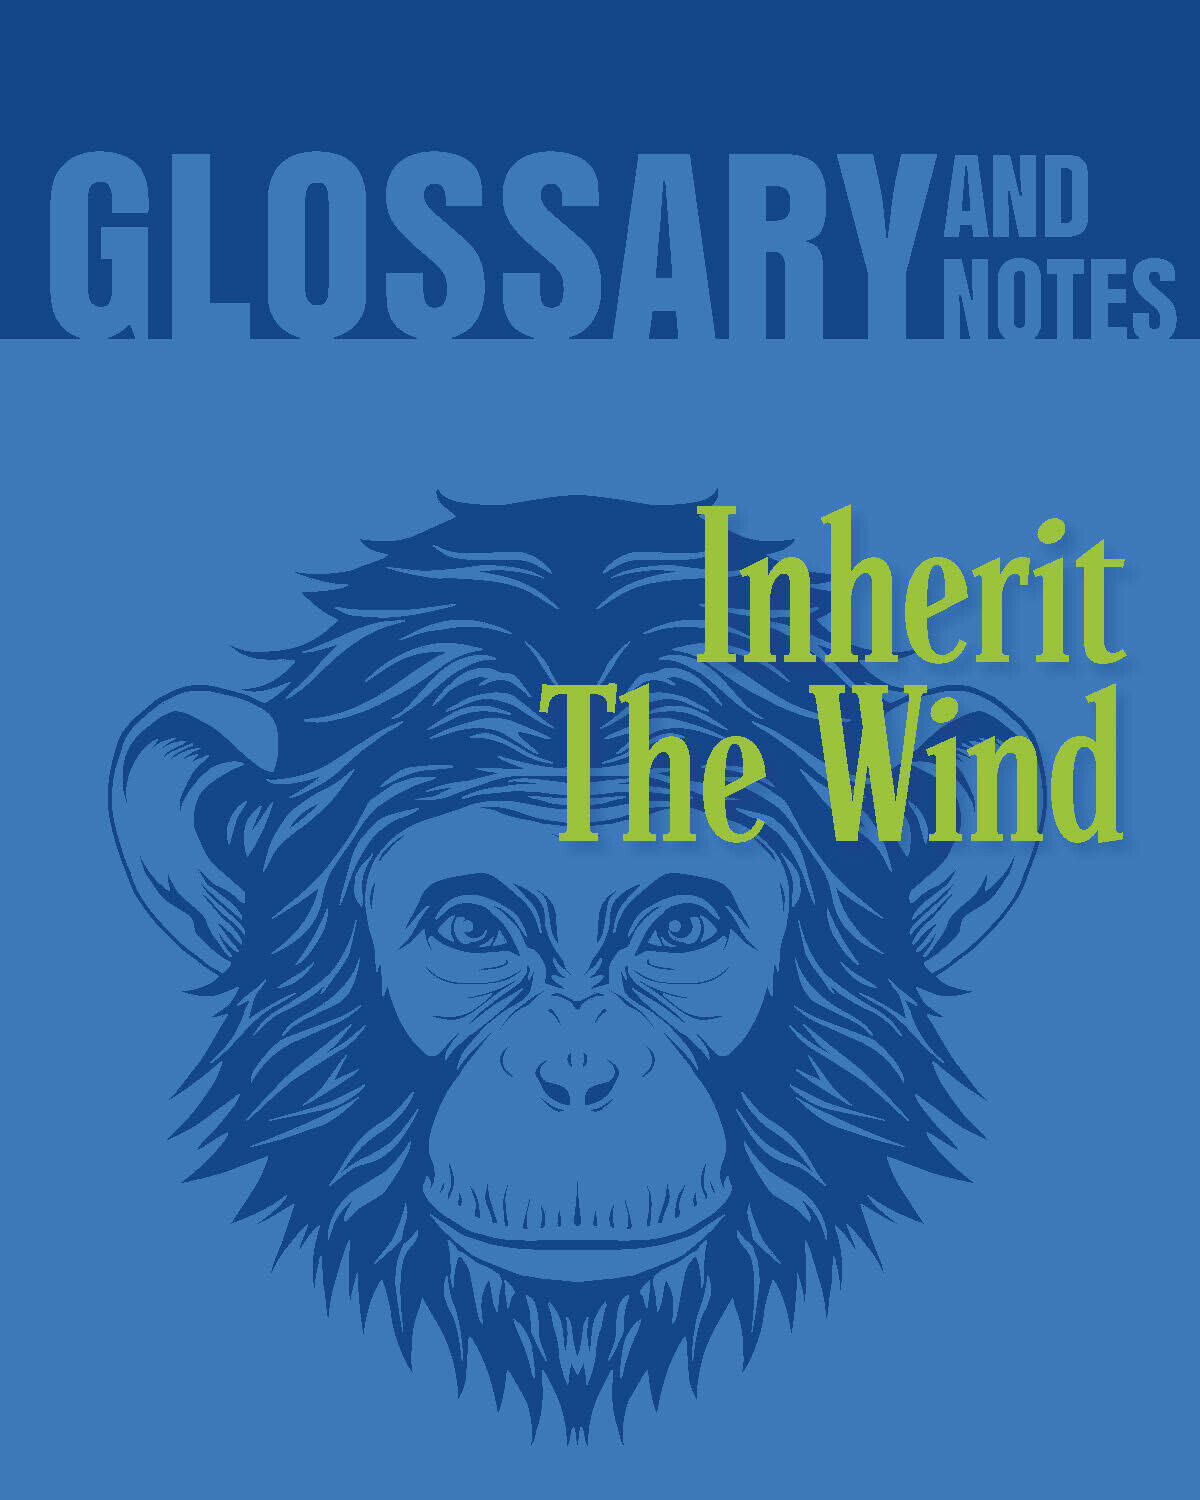 Glossary and Notes: Inherit the Wind